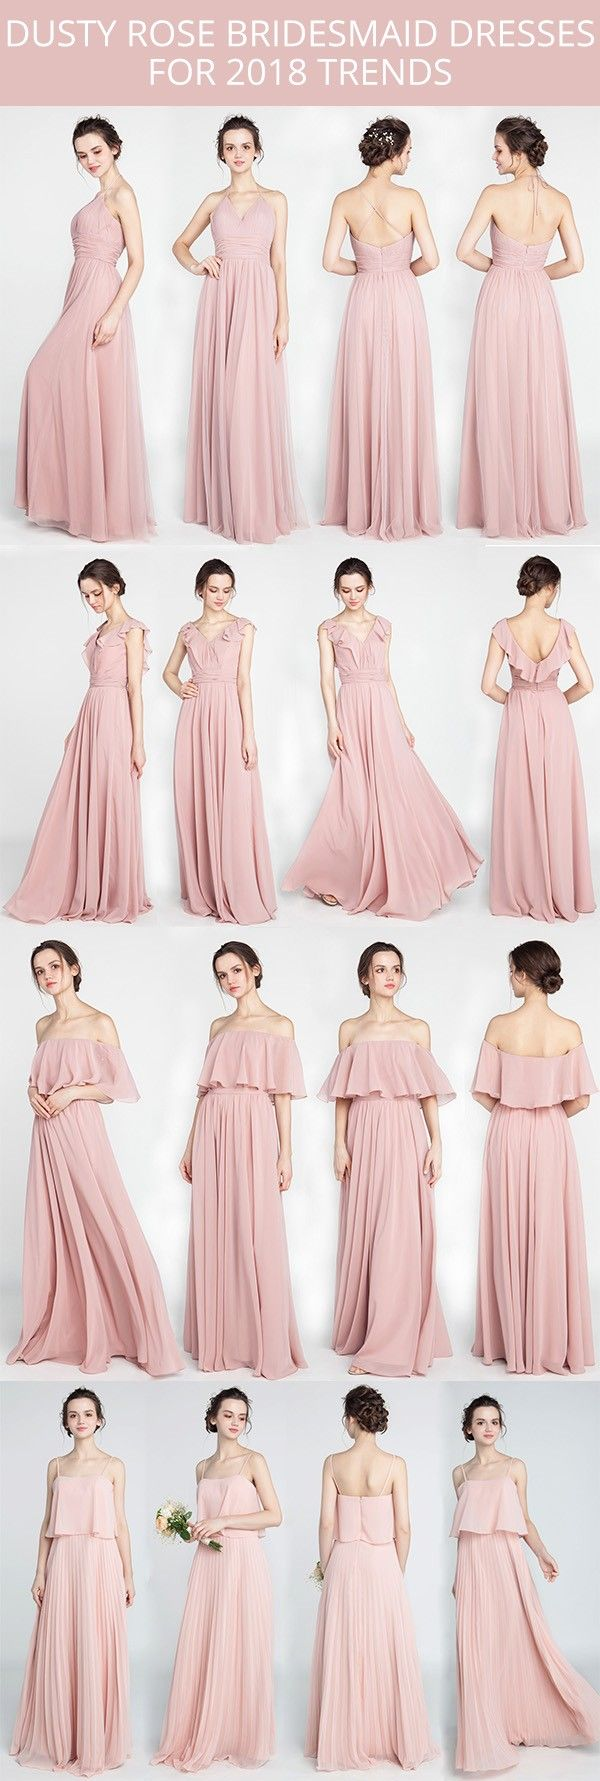 Dusty Rose Bridesmaid Dresses For 2018 Trends Blush Bridesmaid Dresses Pink Bridesmaid Dresses Dusty Rose Bridesmaid Dresses